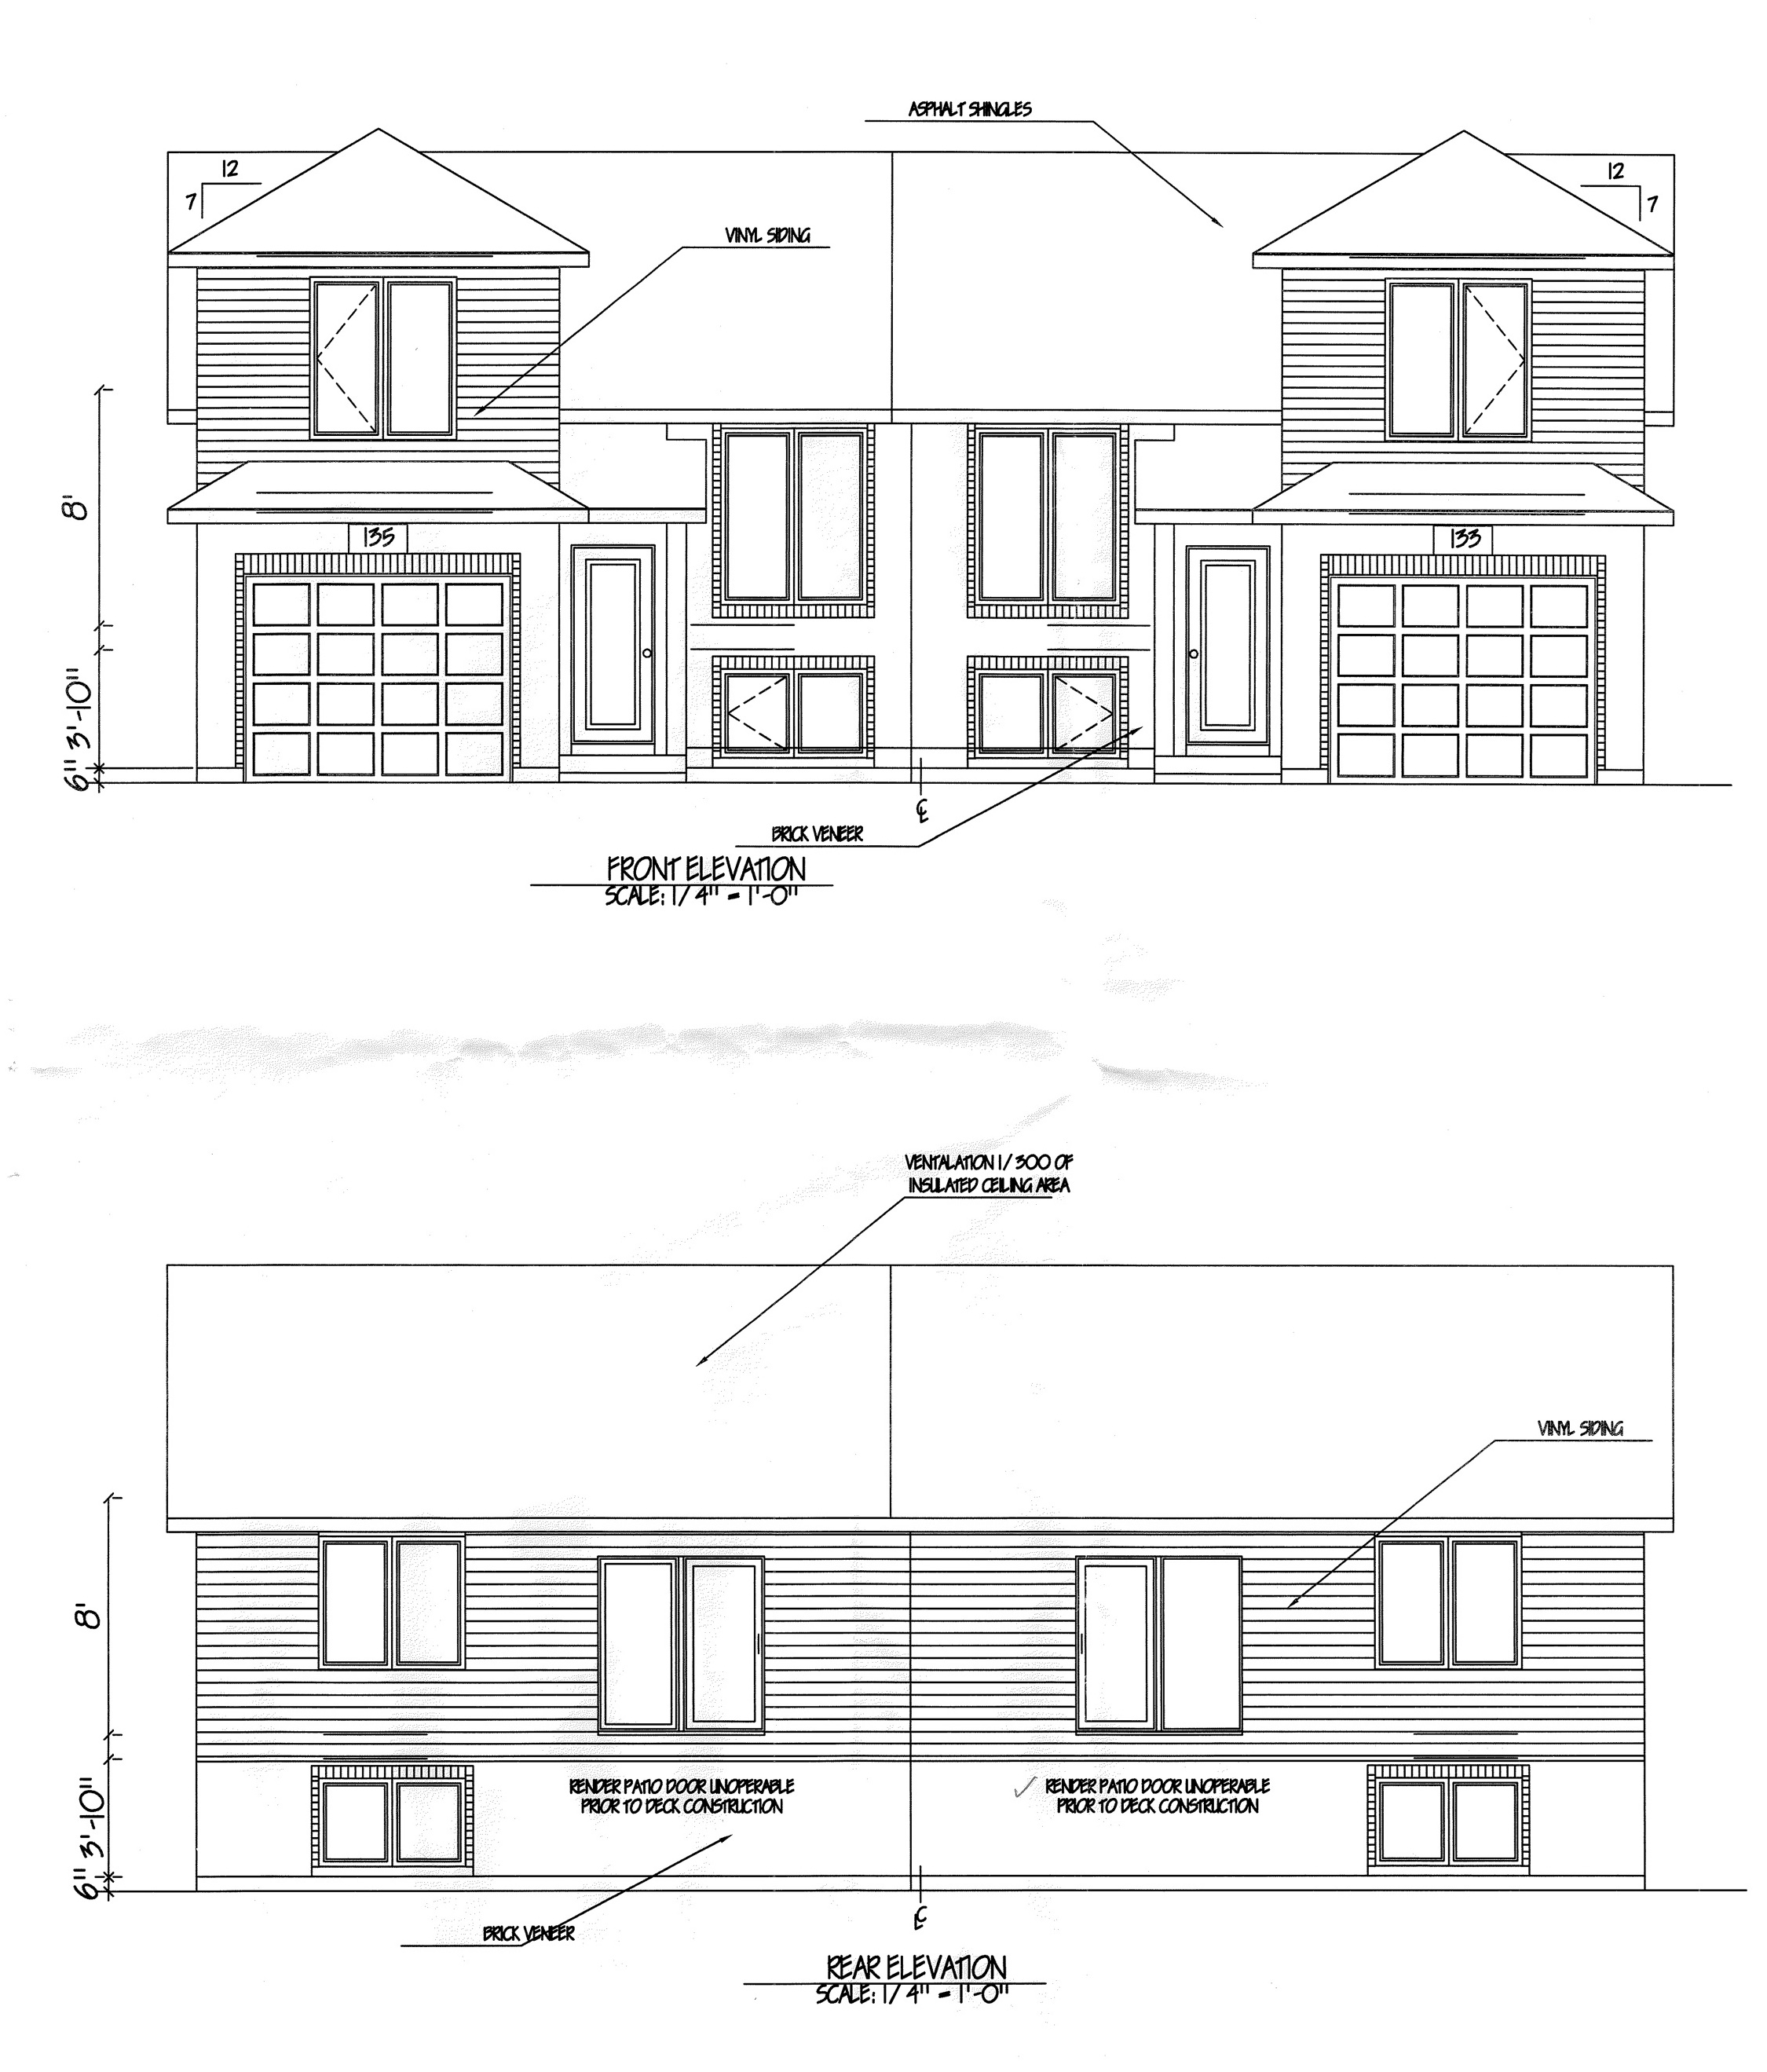 Front Elevation Building Construction : Forhan front rear elevation nor built construction